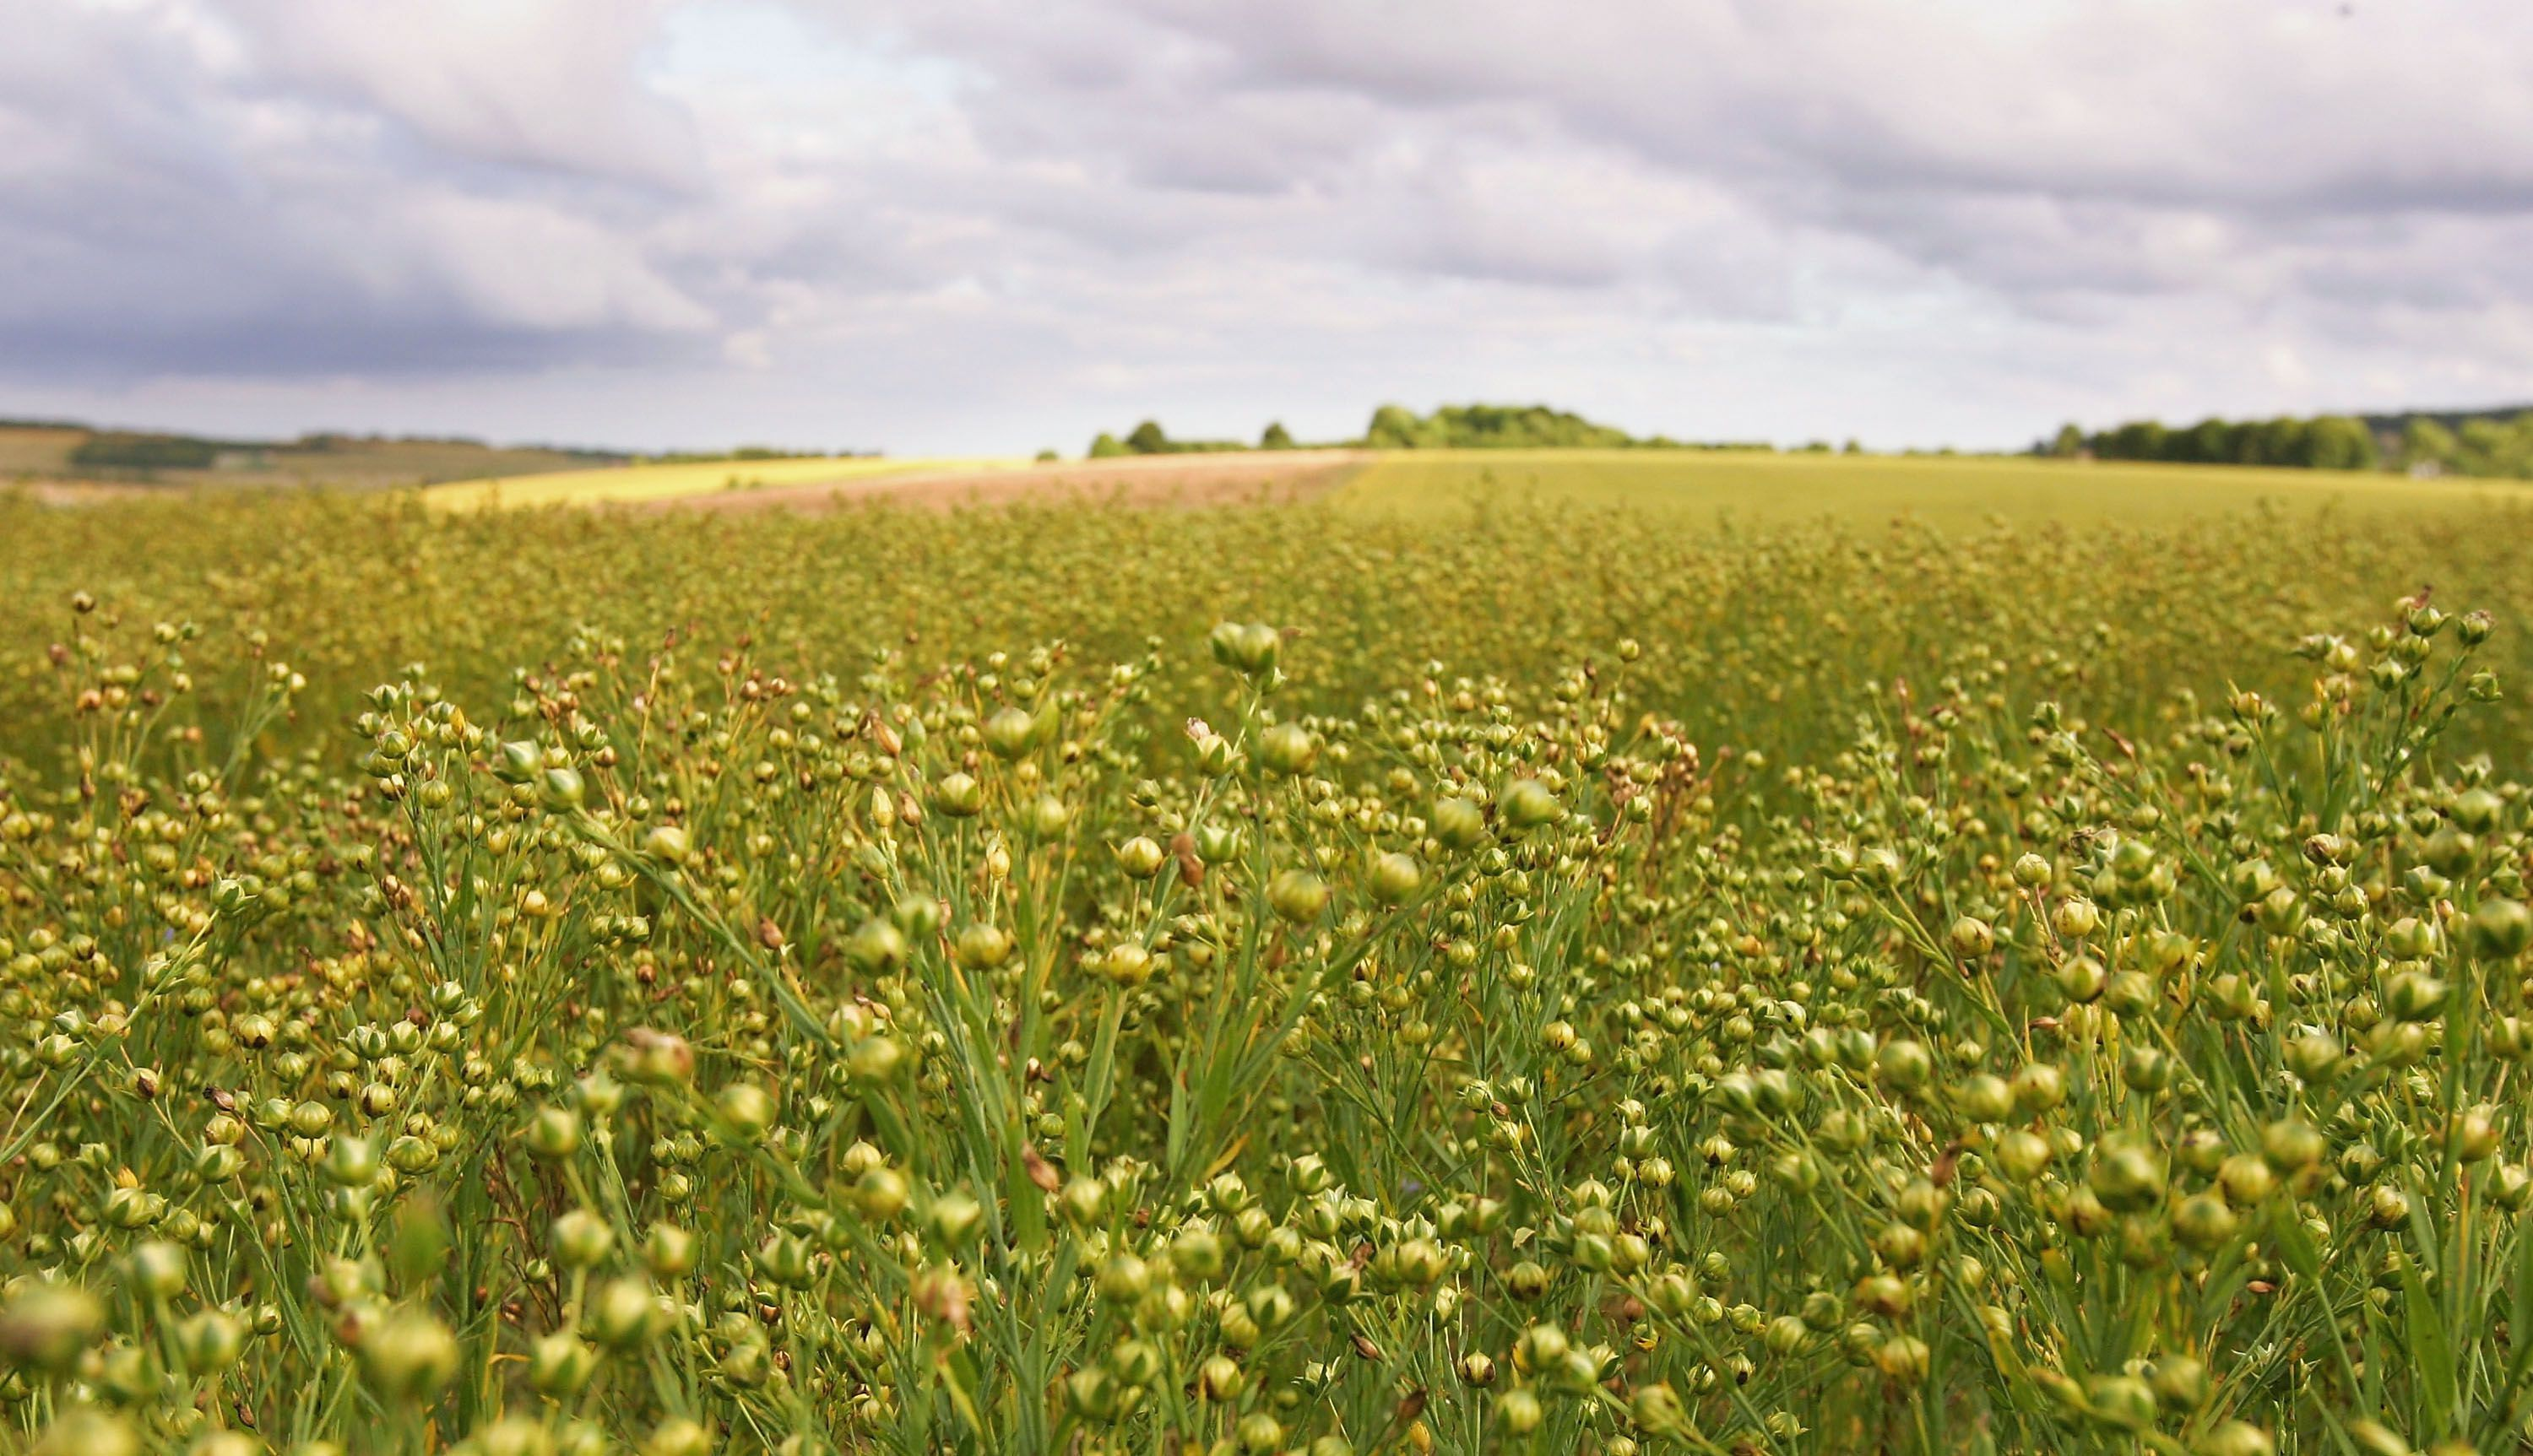 Field of Linseed Flax South of Salisbury, England